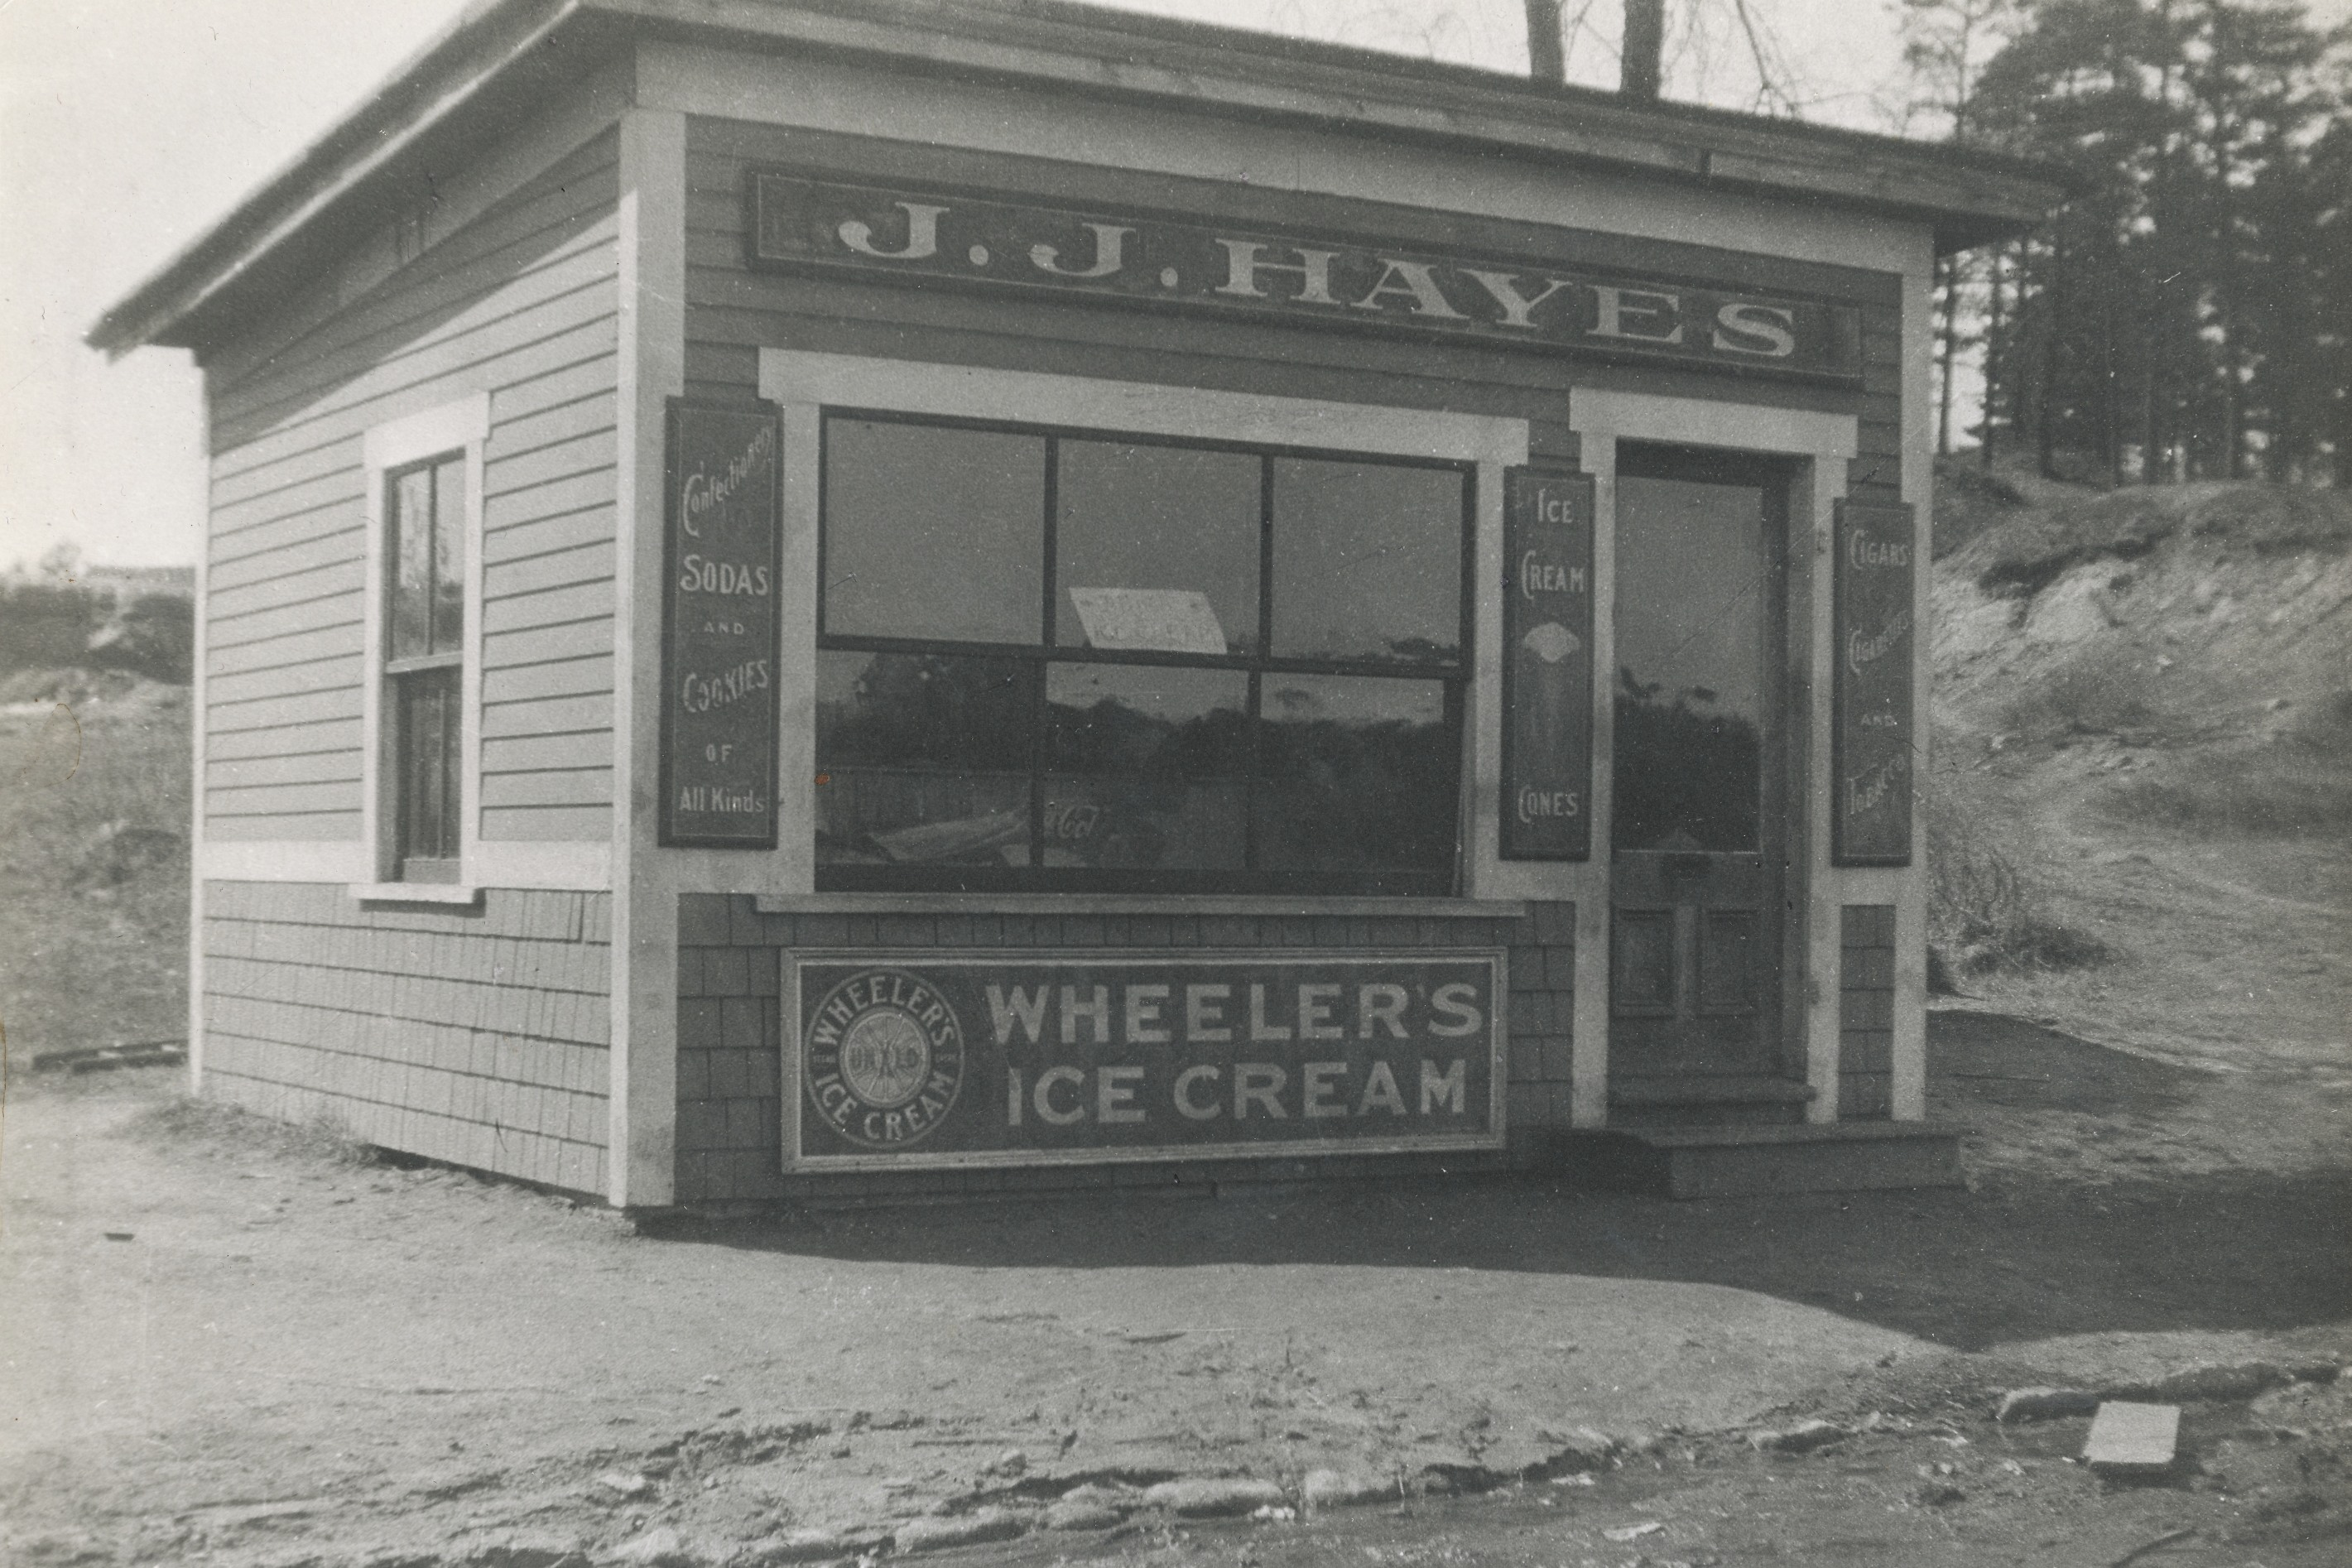 Jeremiah J Hayes Variety Store in Manchester, NH